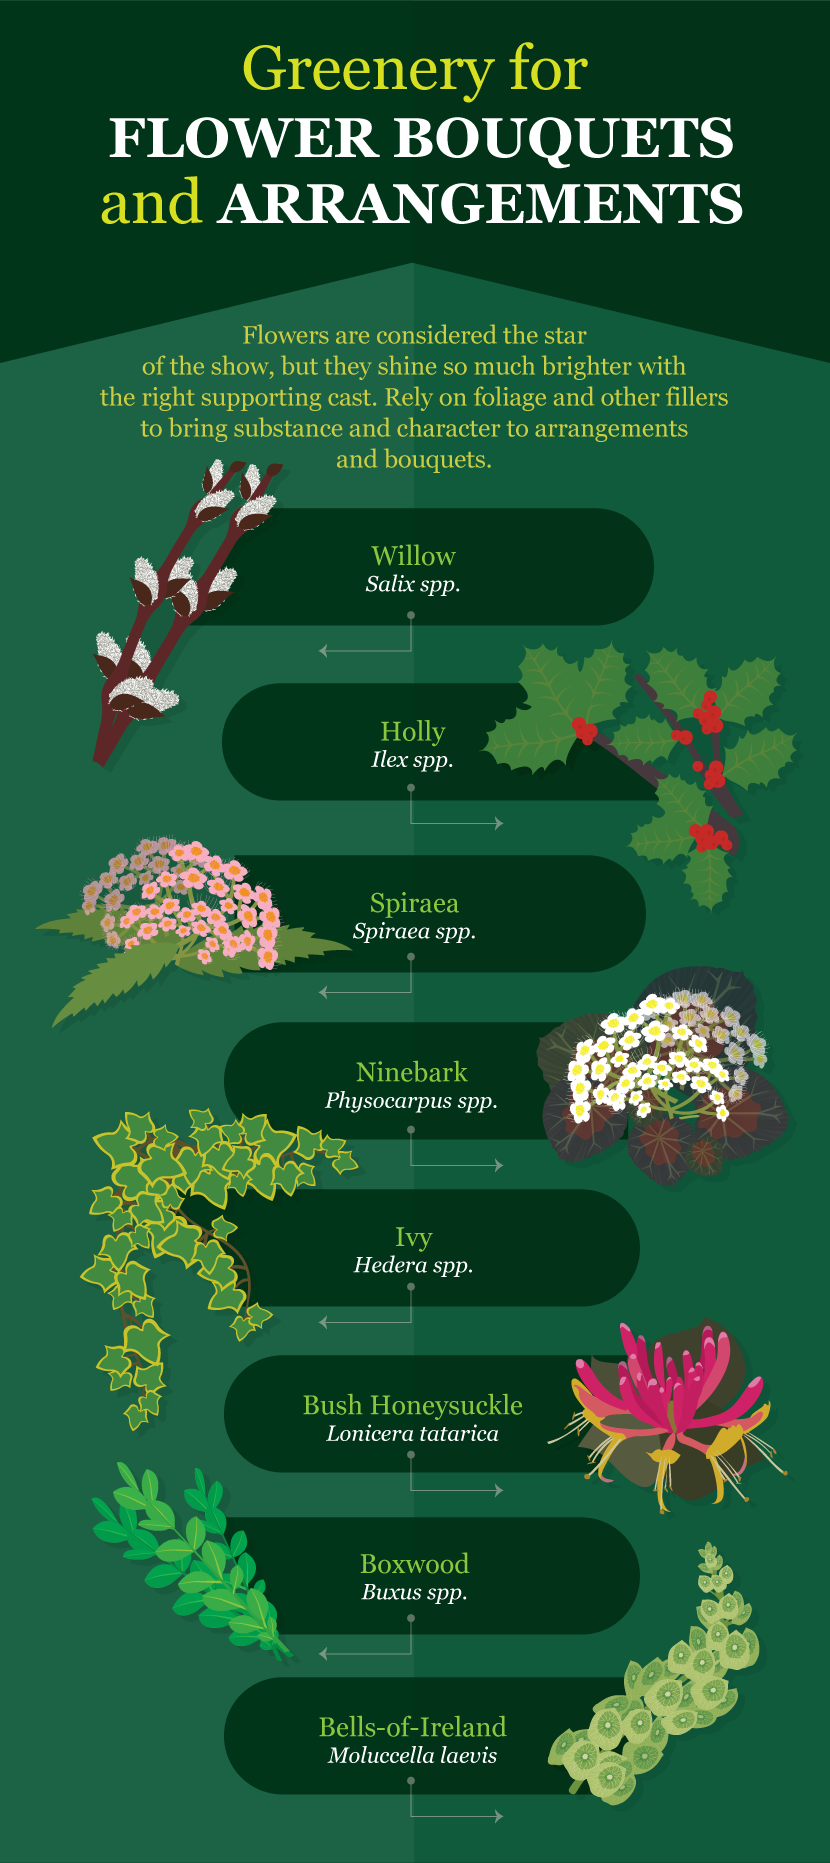 Greenery For Flower Arrangements - A Guide to Growing Your Own Cutting Flowers